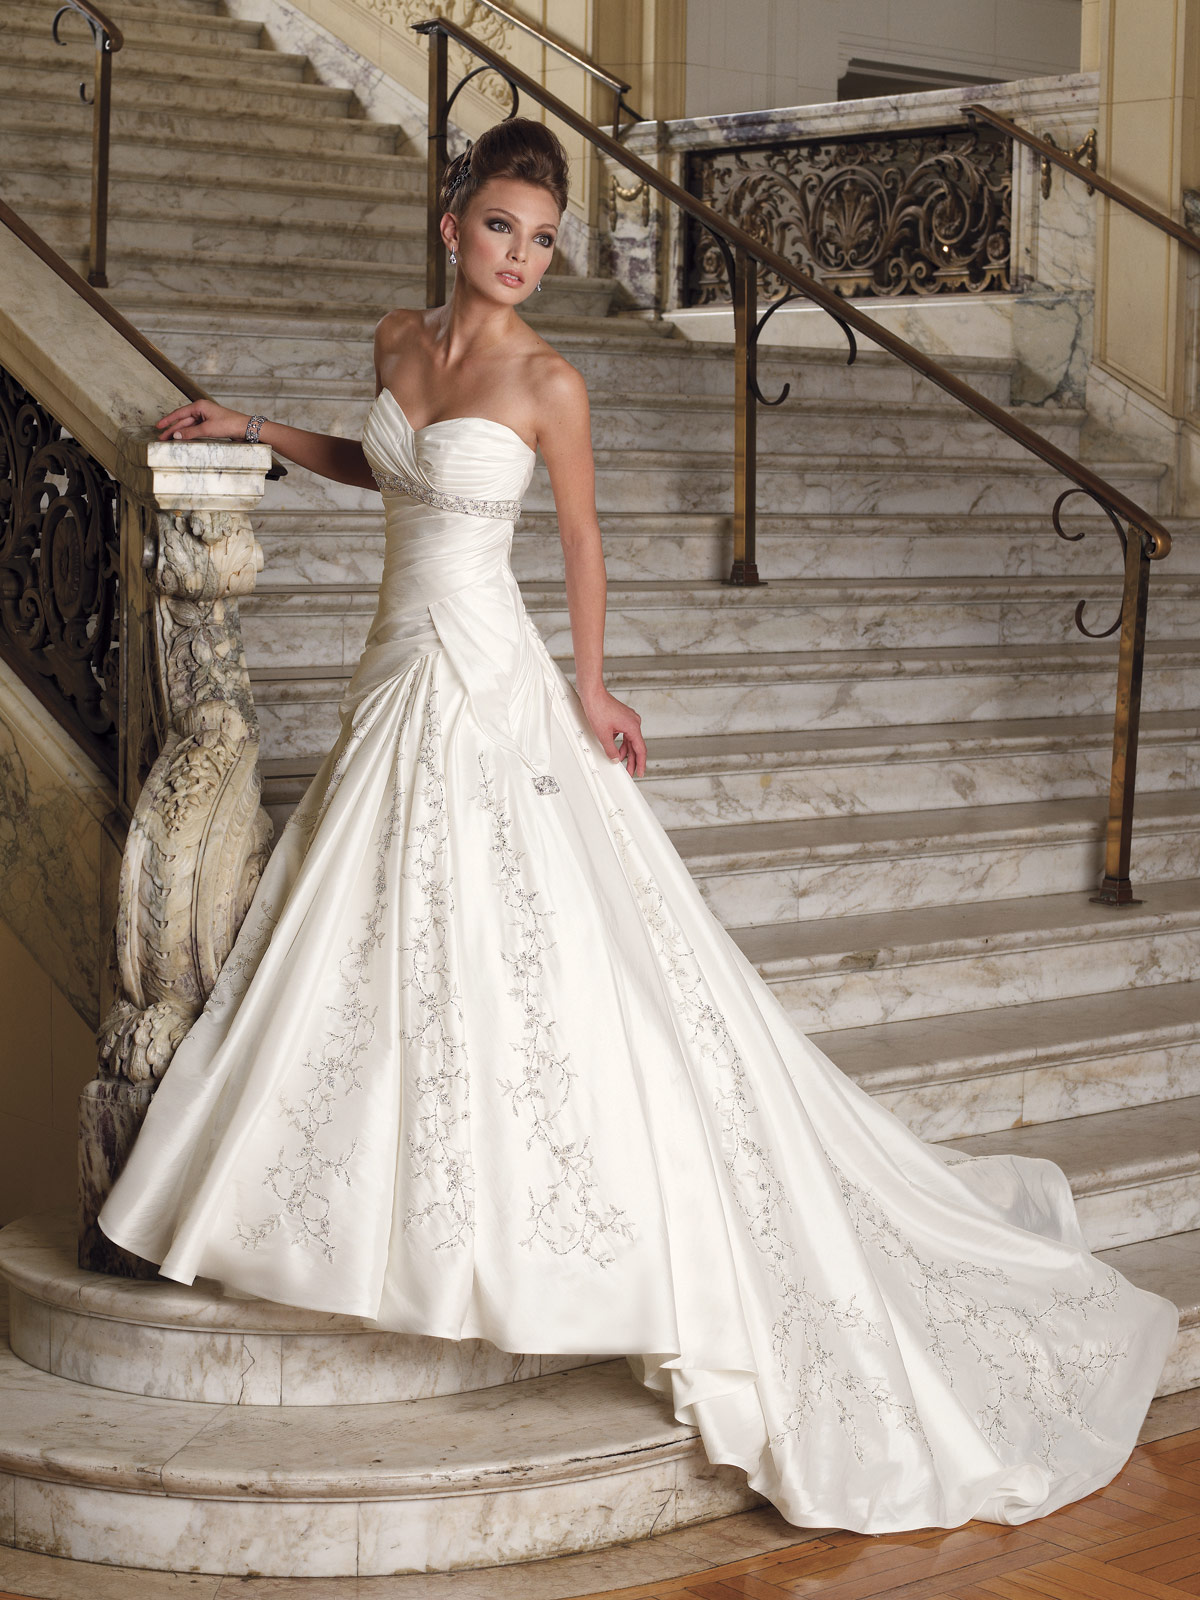 : panina wedding dresses 2013